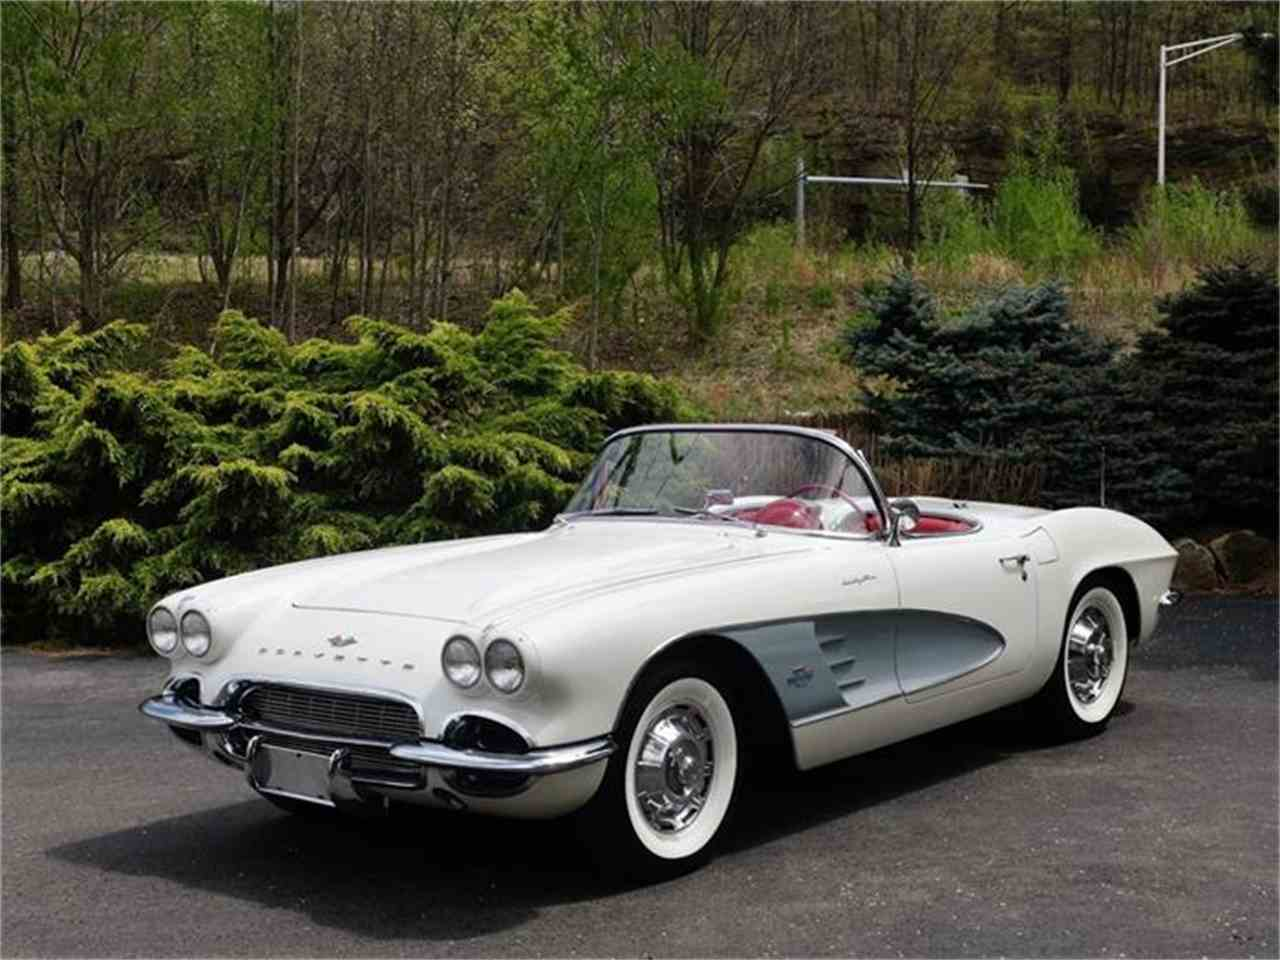 1961 Corvette For Sale >> 1961 Chevrolet Corvette for Sale | ClassicCars.com | CC-715340